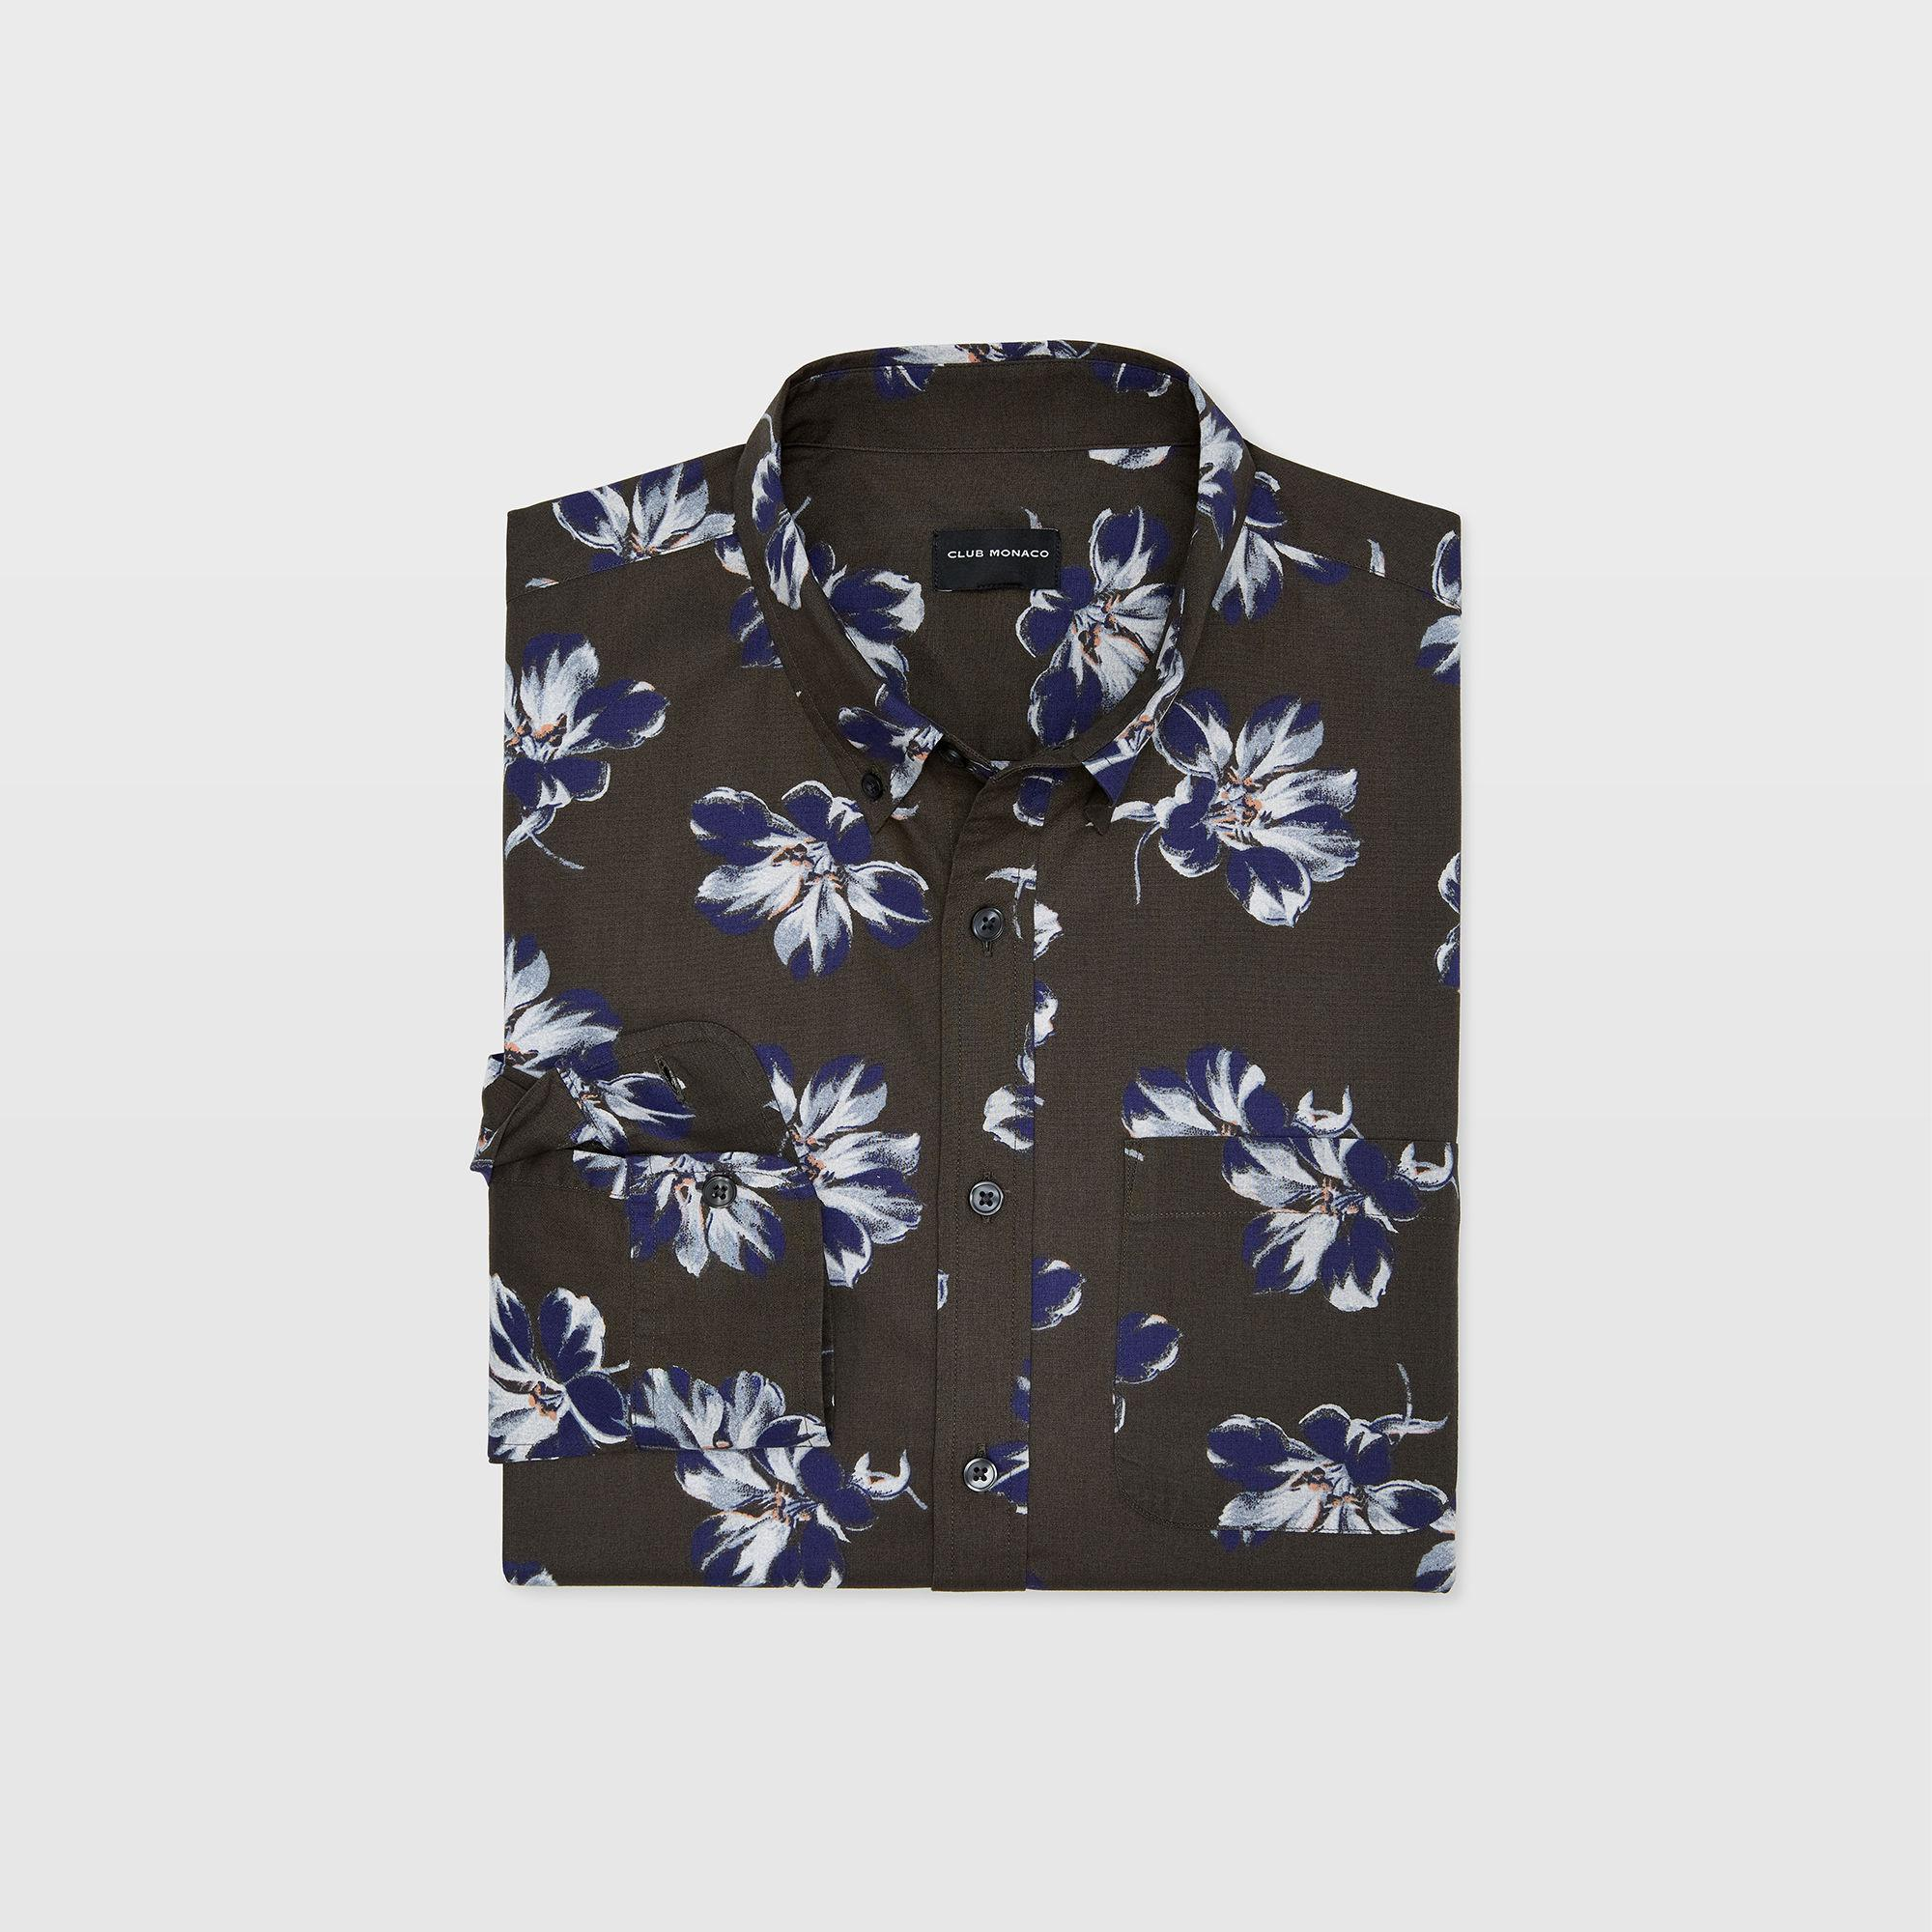 148592957ab Club Monaco - Green Slim Felting Floral Shirt for Men - Lyst. View  fullscreen